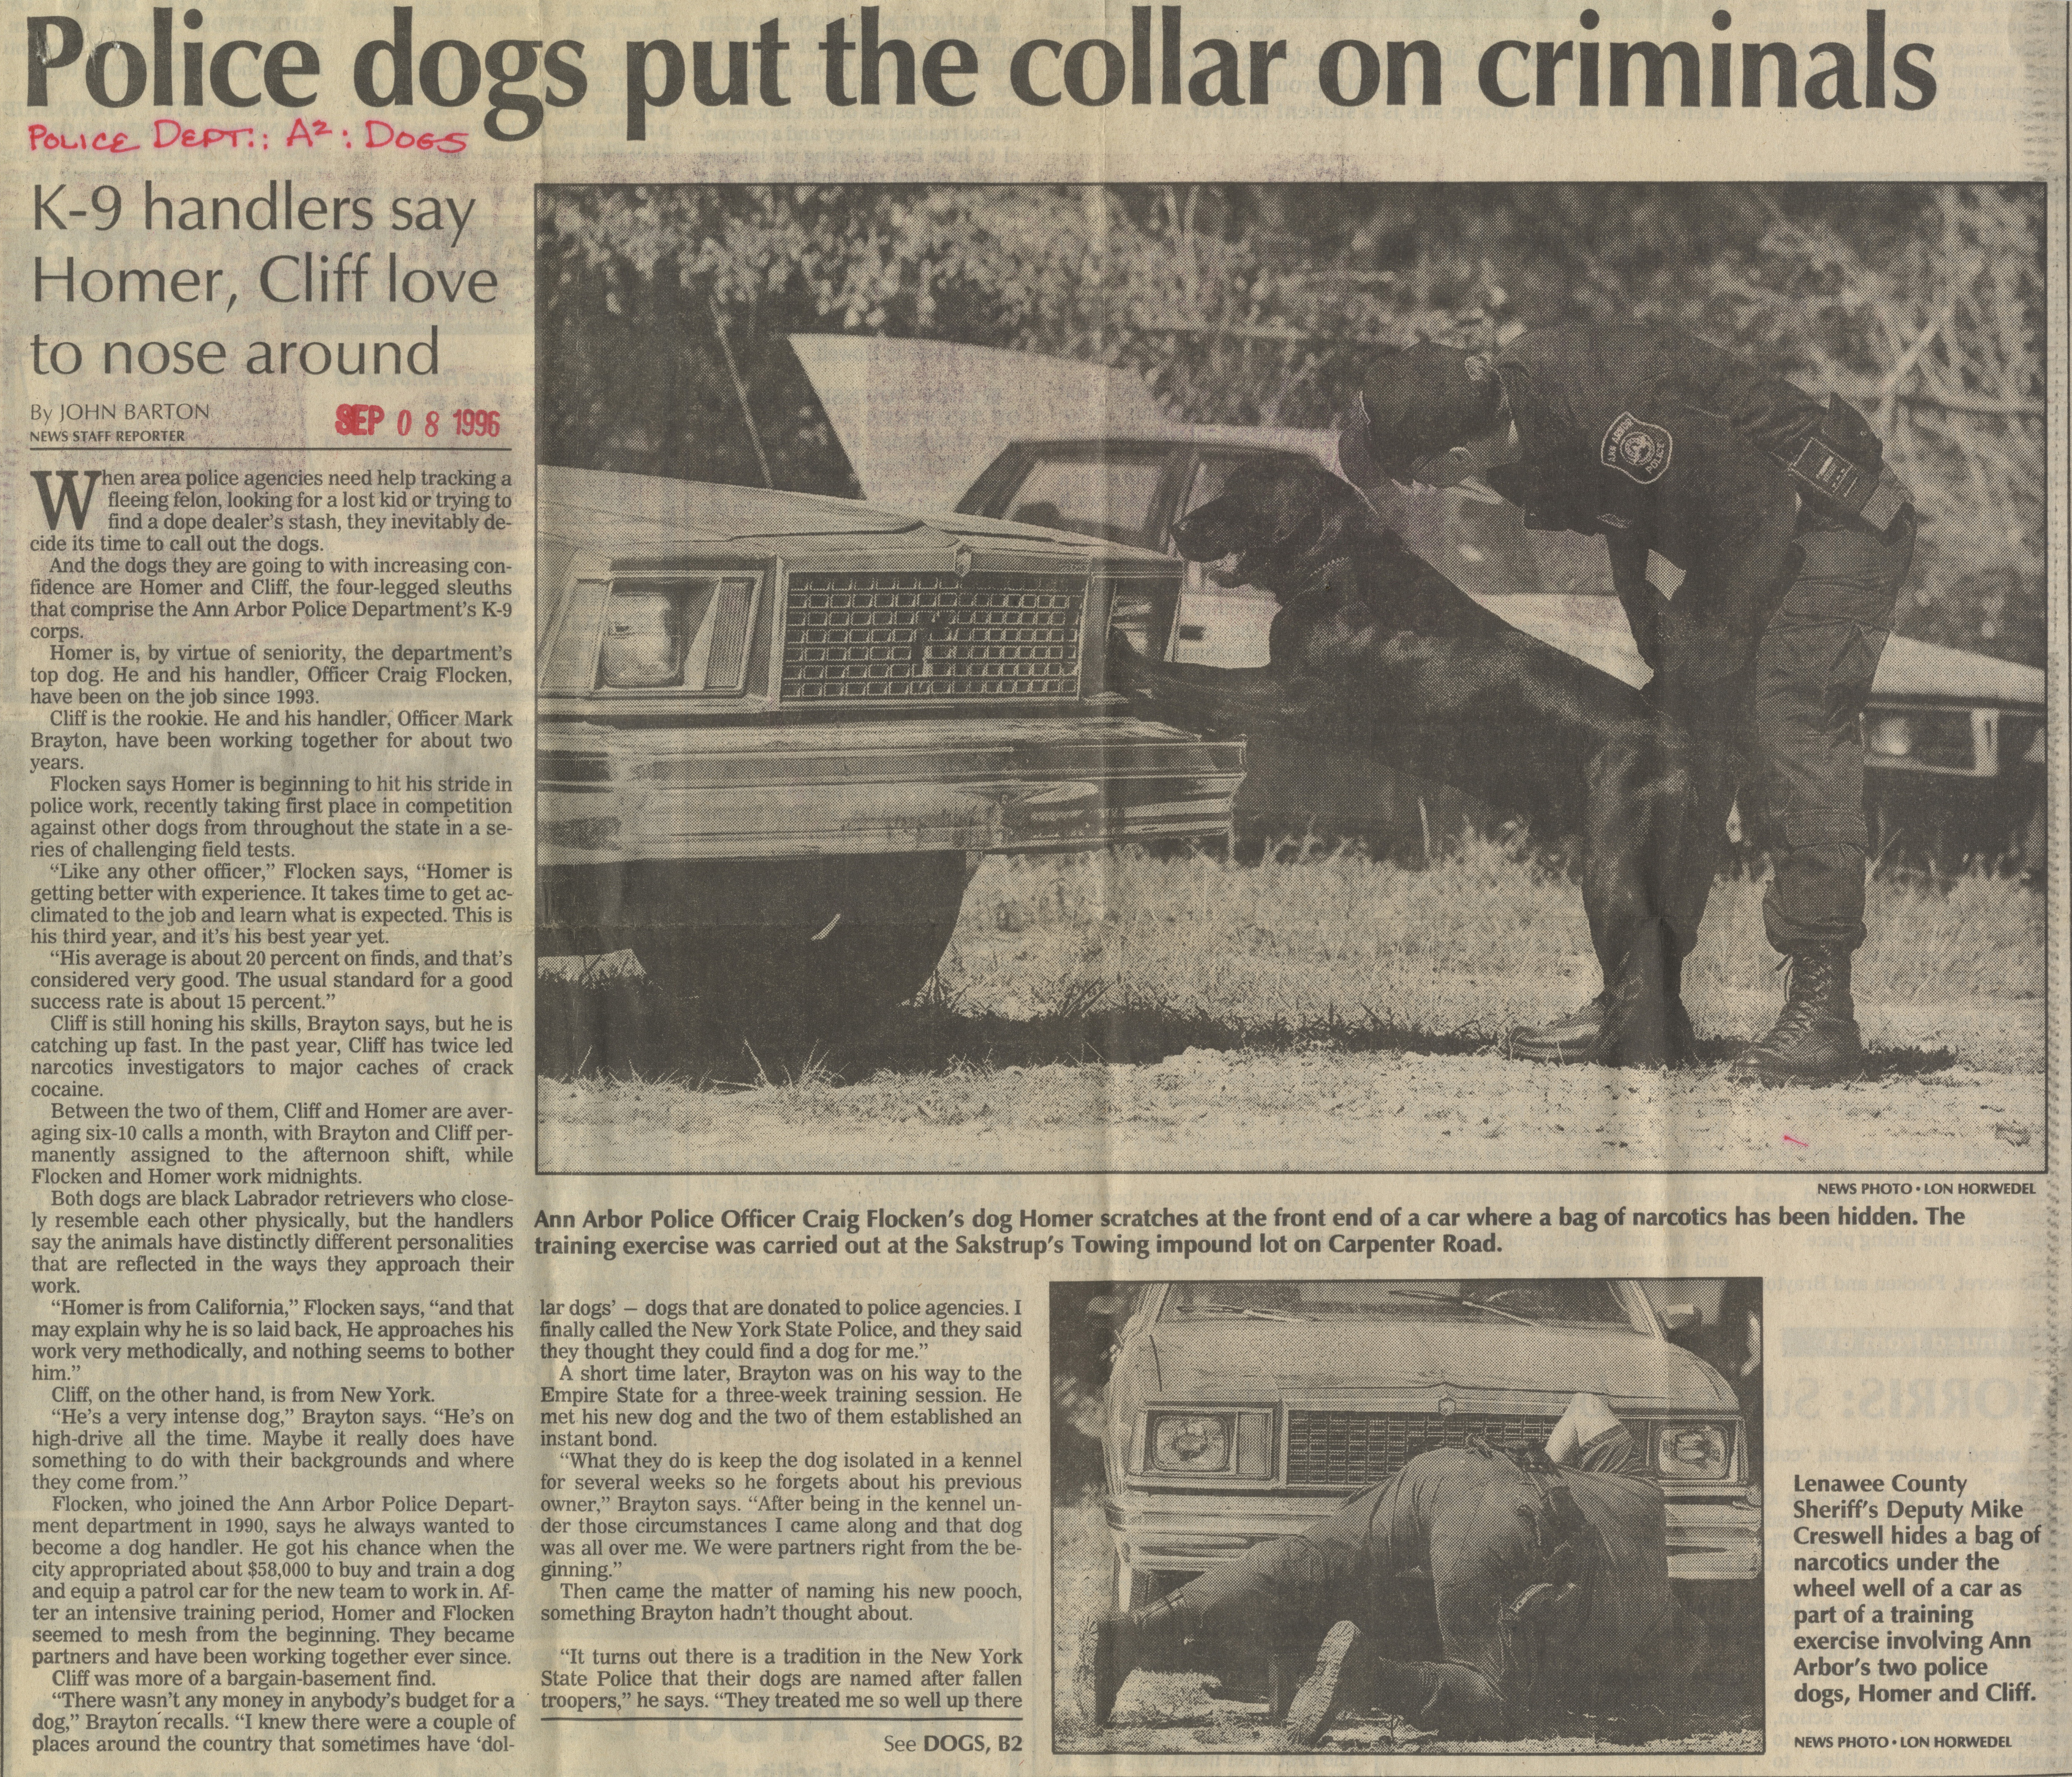 Police Dogs Put The Collar On Criminals image